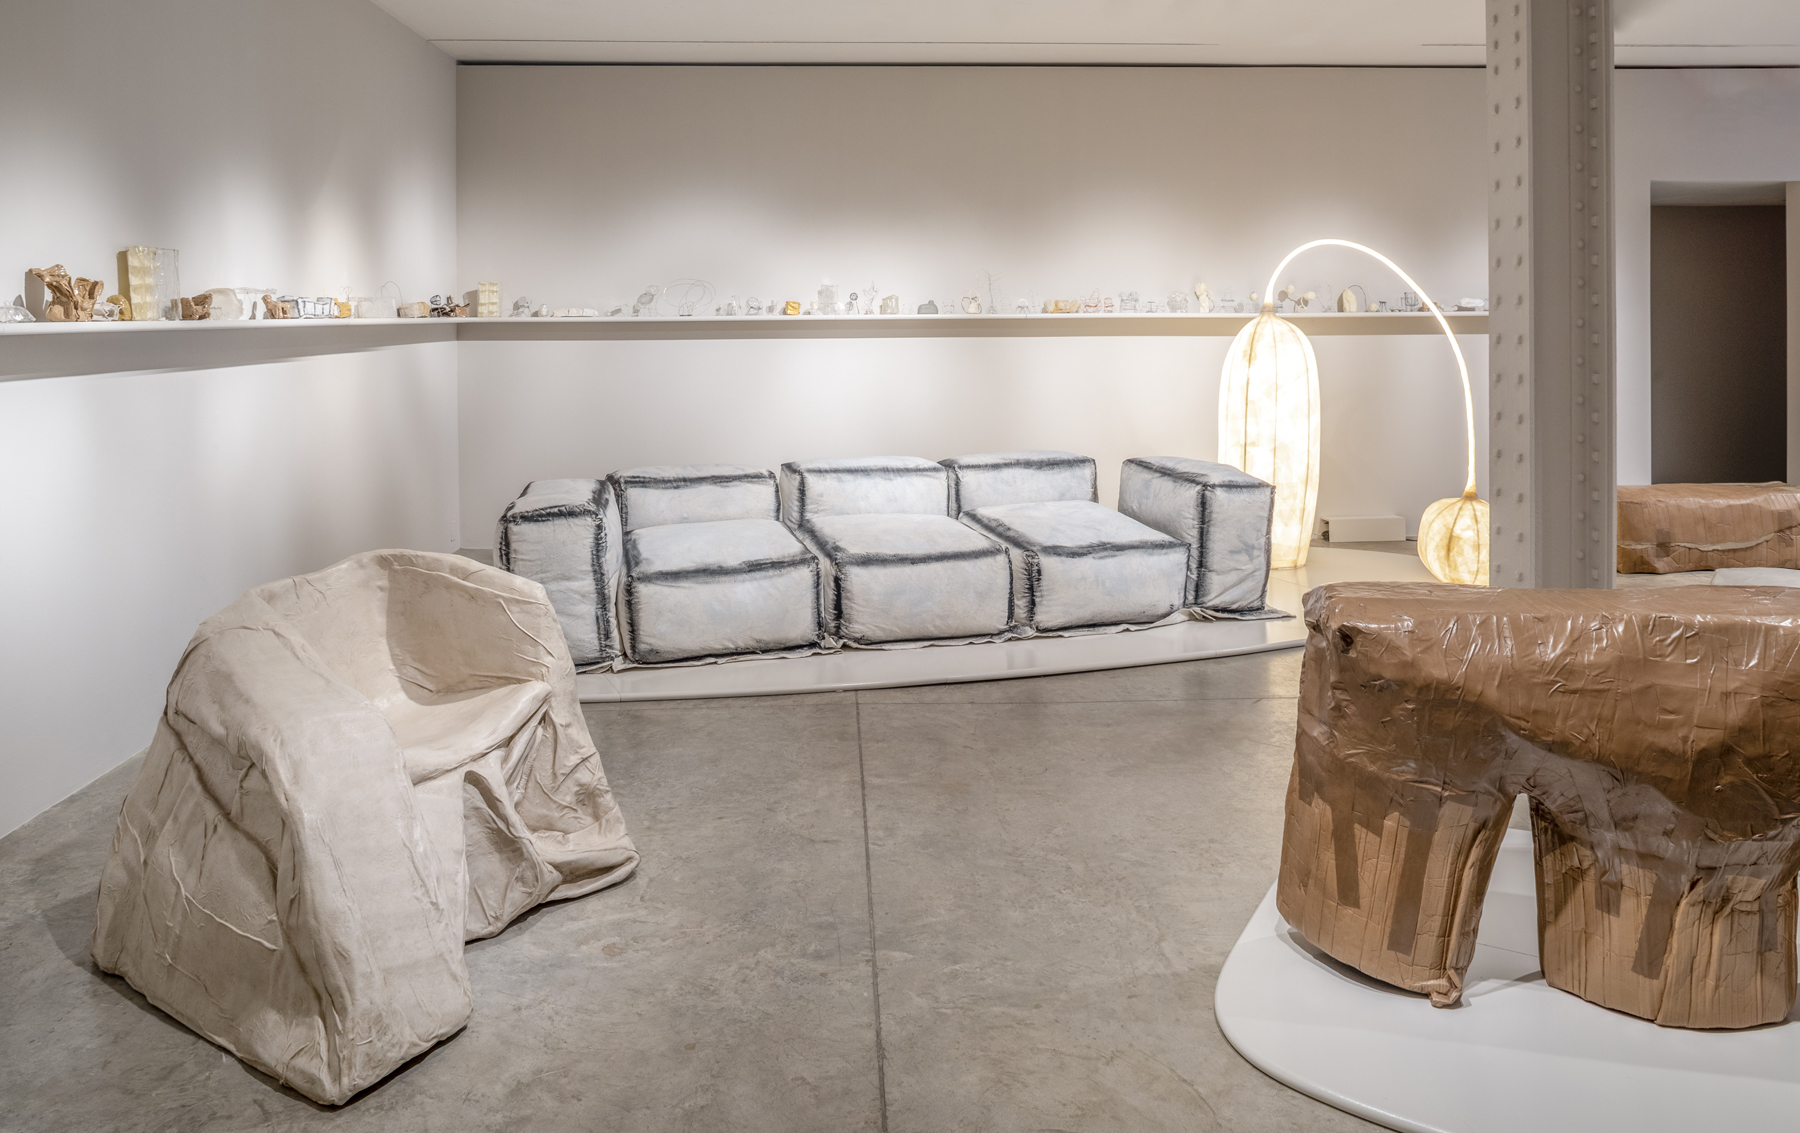 Faye Toogood Maquettes Friedman Benda Assemblage 6 Unlearning Canvas chair Canvas & Foam soaf Masking Table light Box bench Parcel Tape console